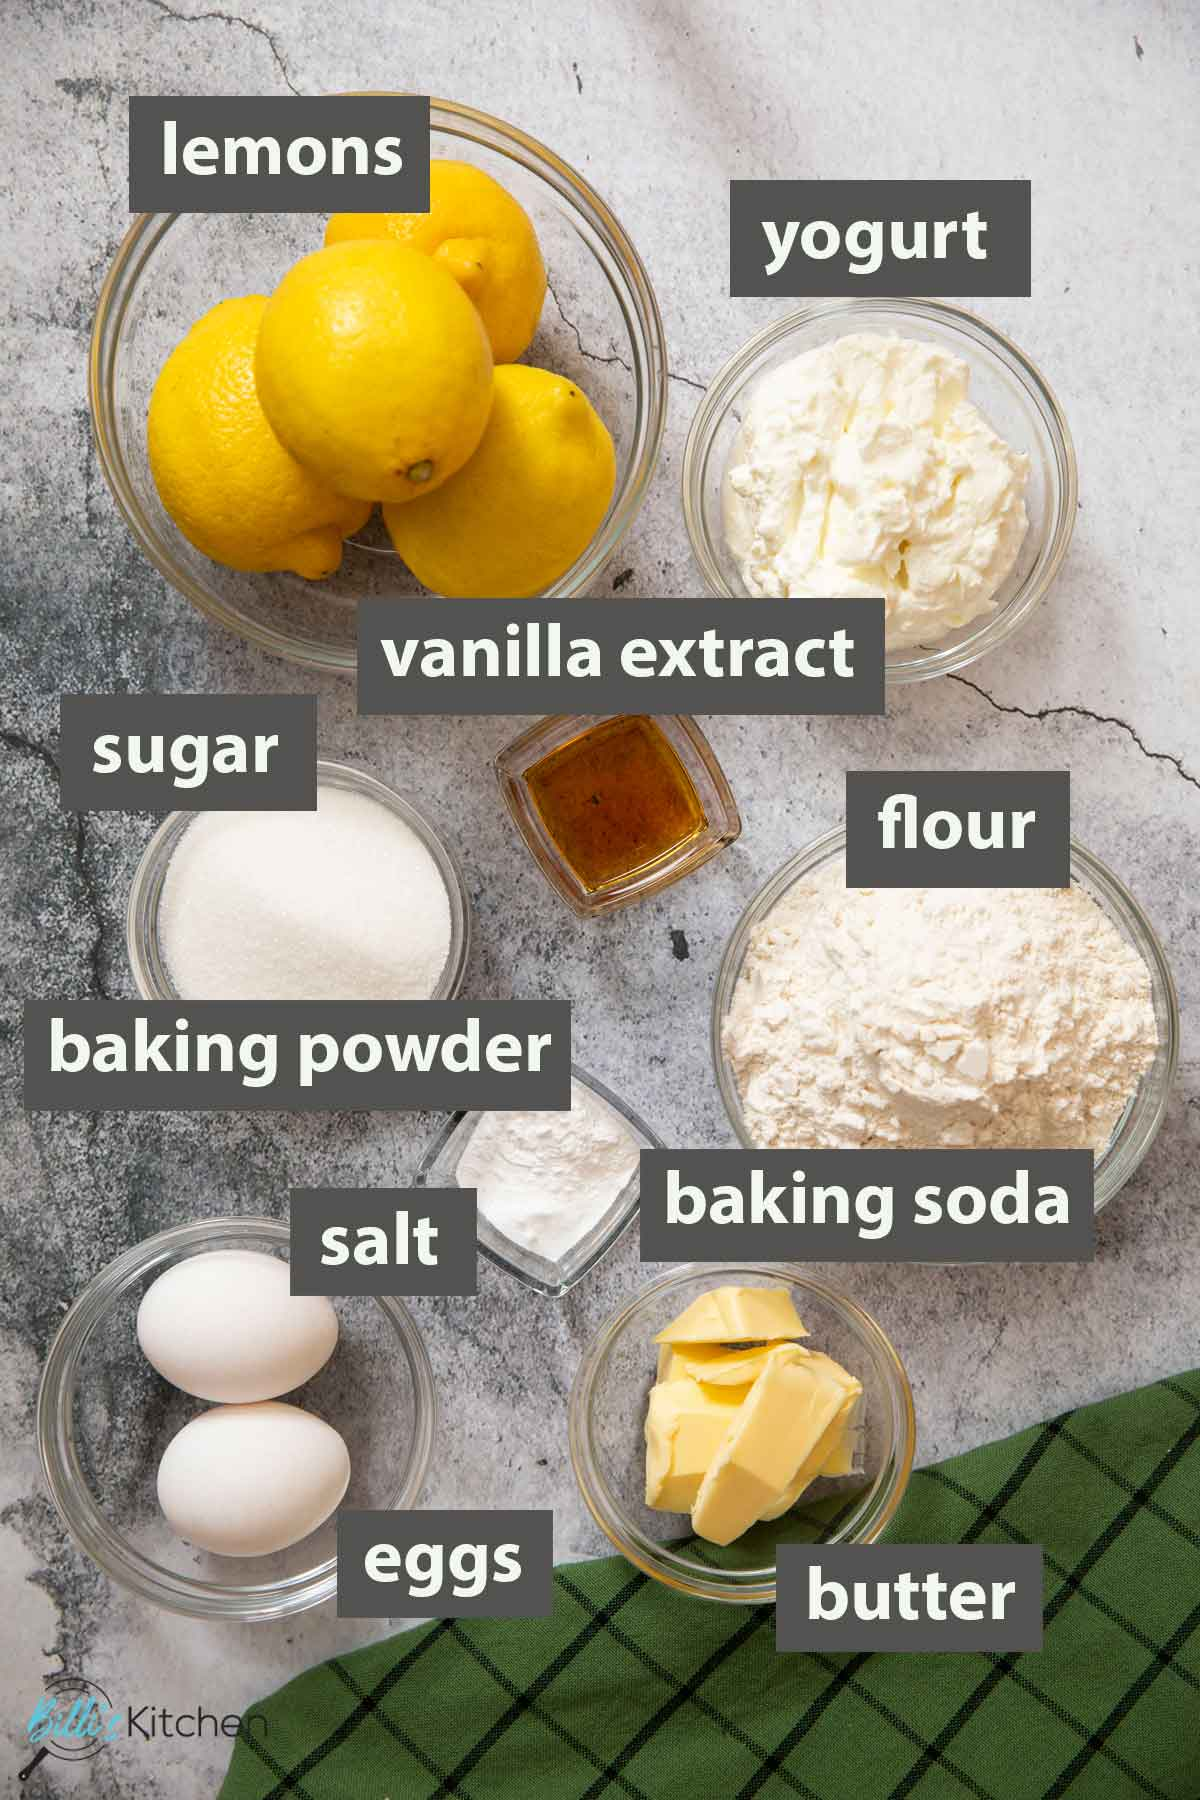 An image showing all the ingredients you need to make easy lemon muffins.